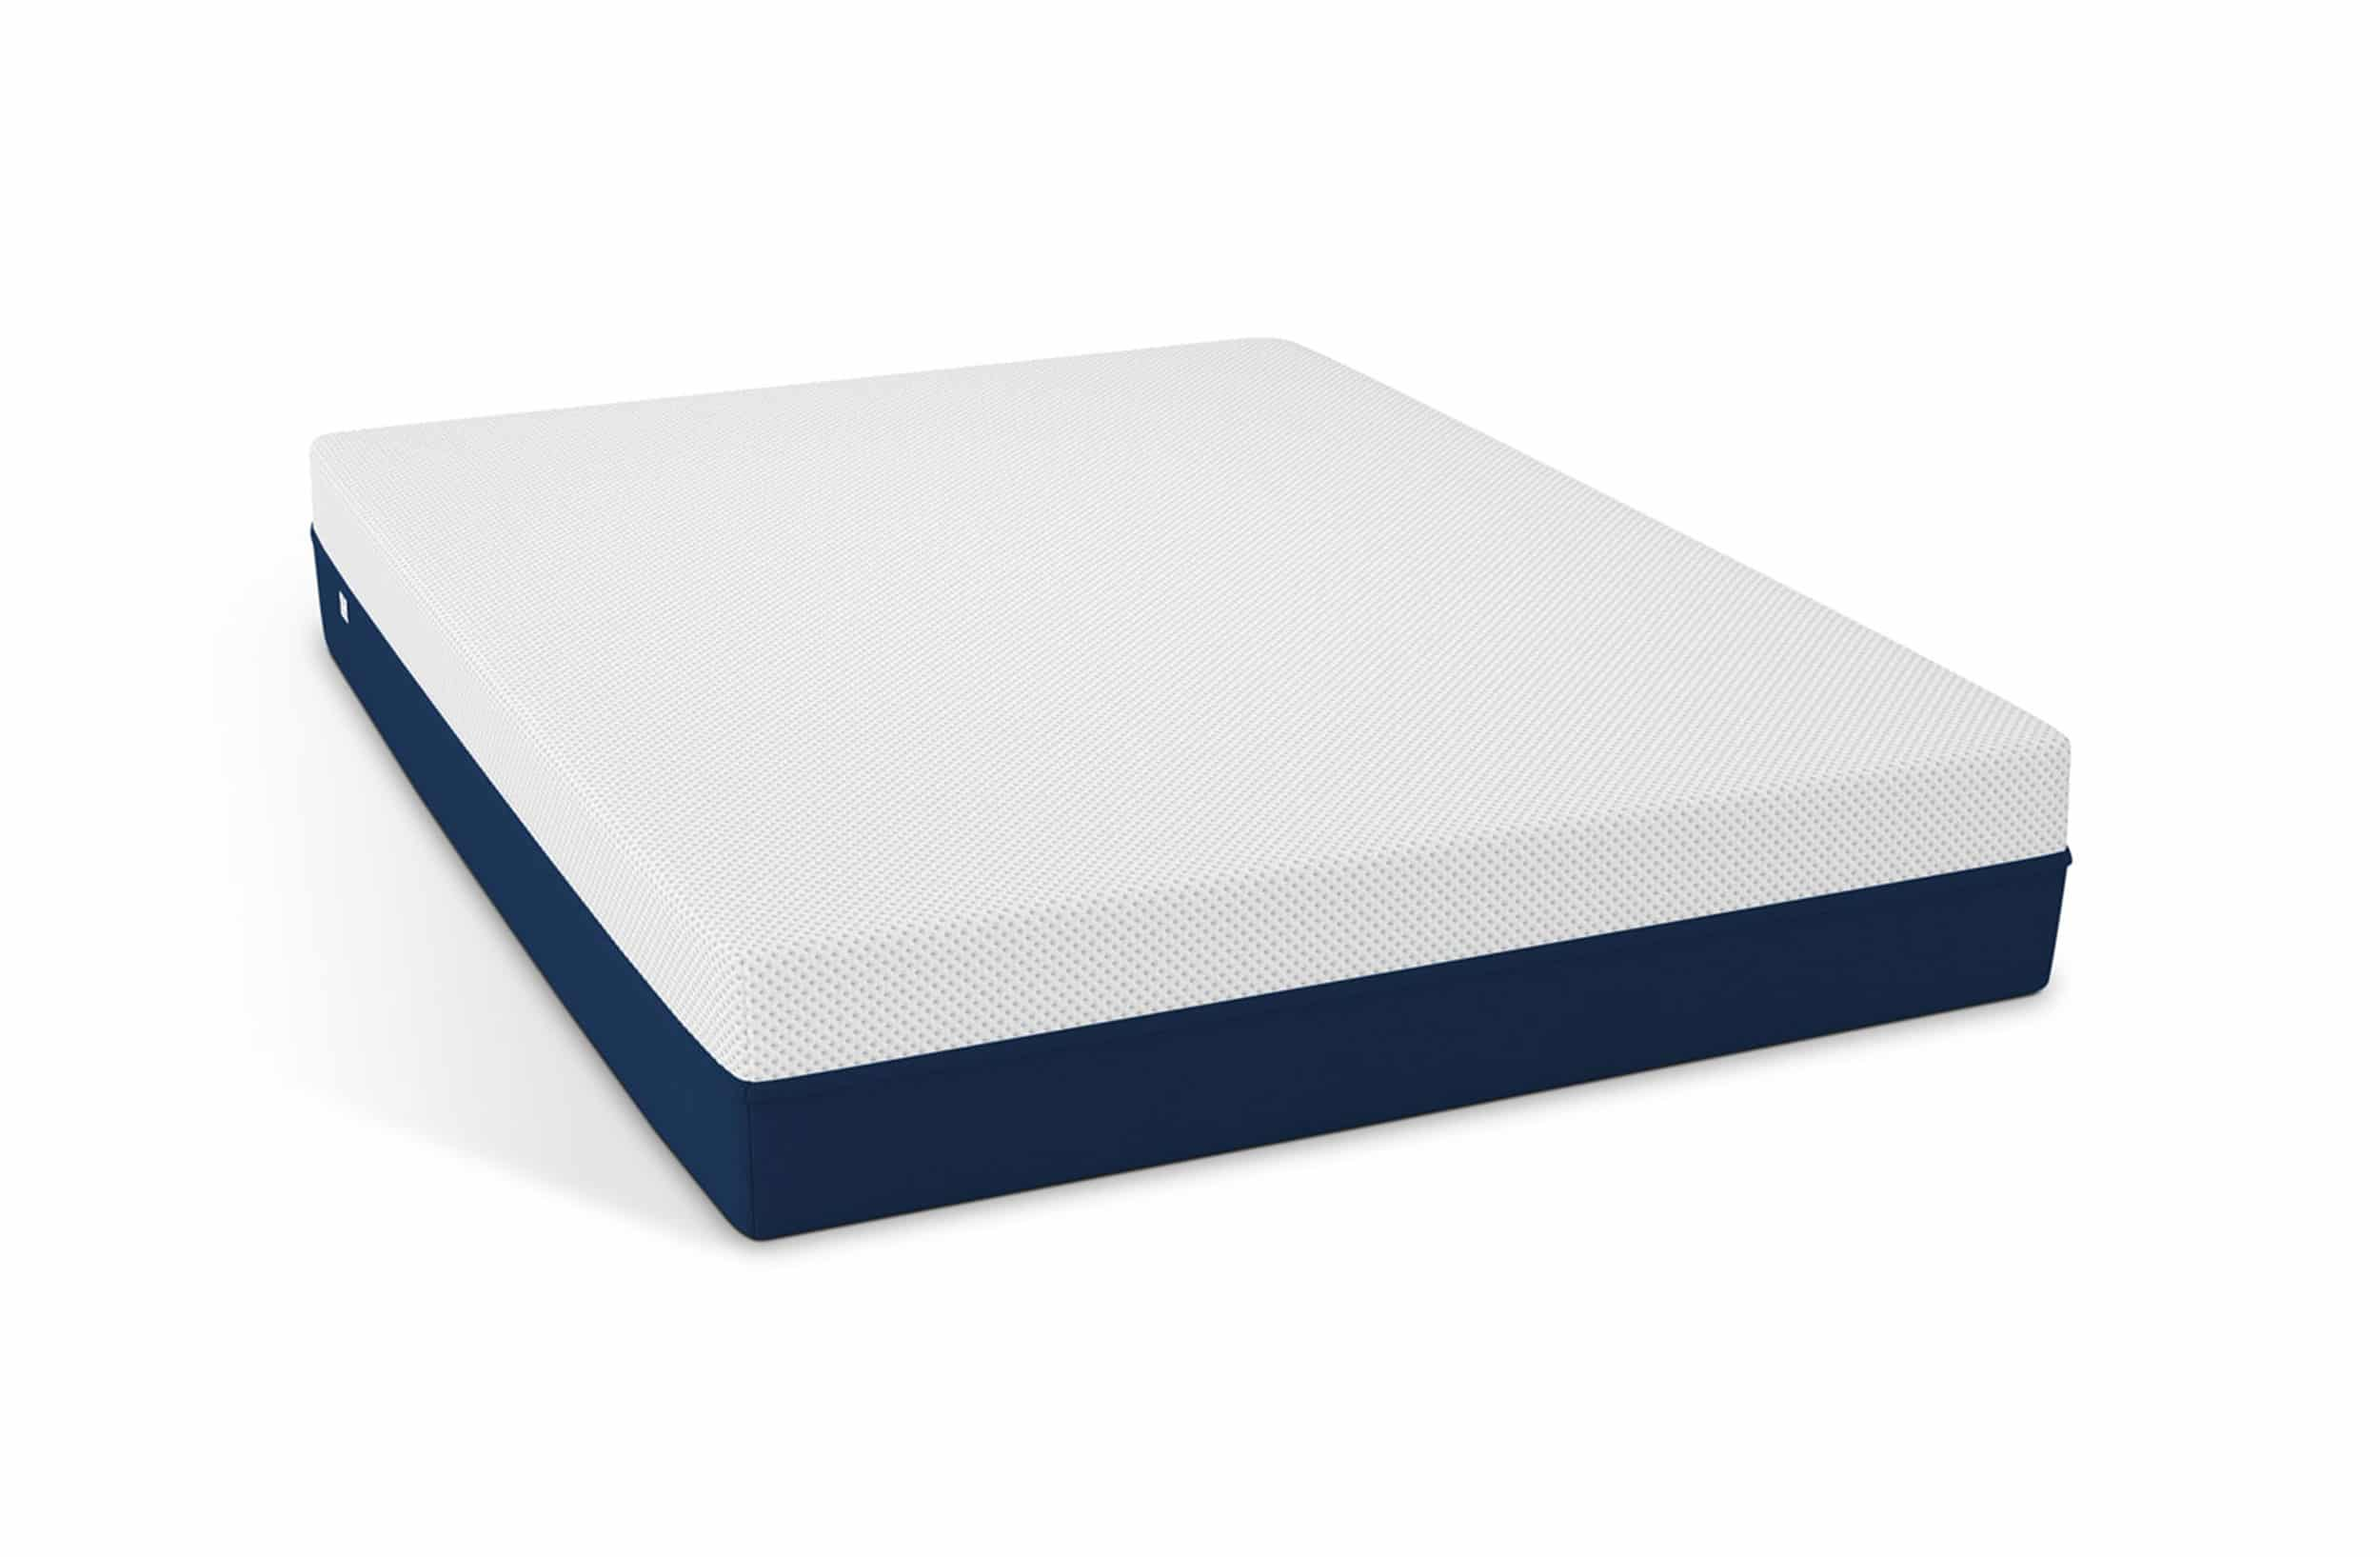 Different Types Of Foam How To Find The Most Comfortable Mattress Sleep Junkie